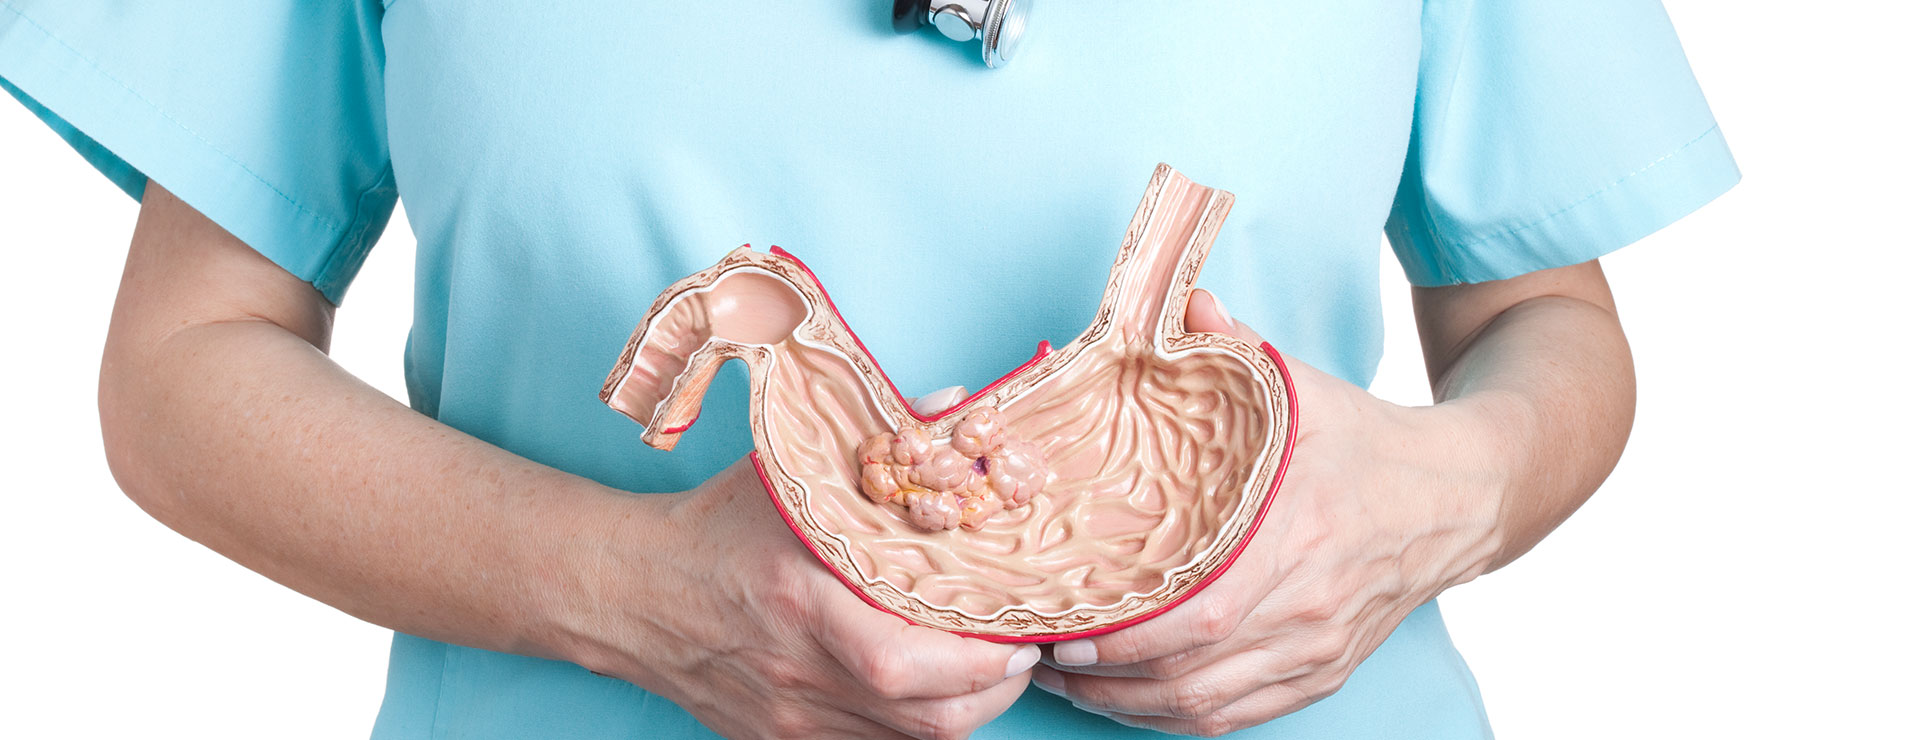 doctor holding a model of a stomach